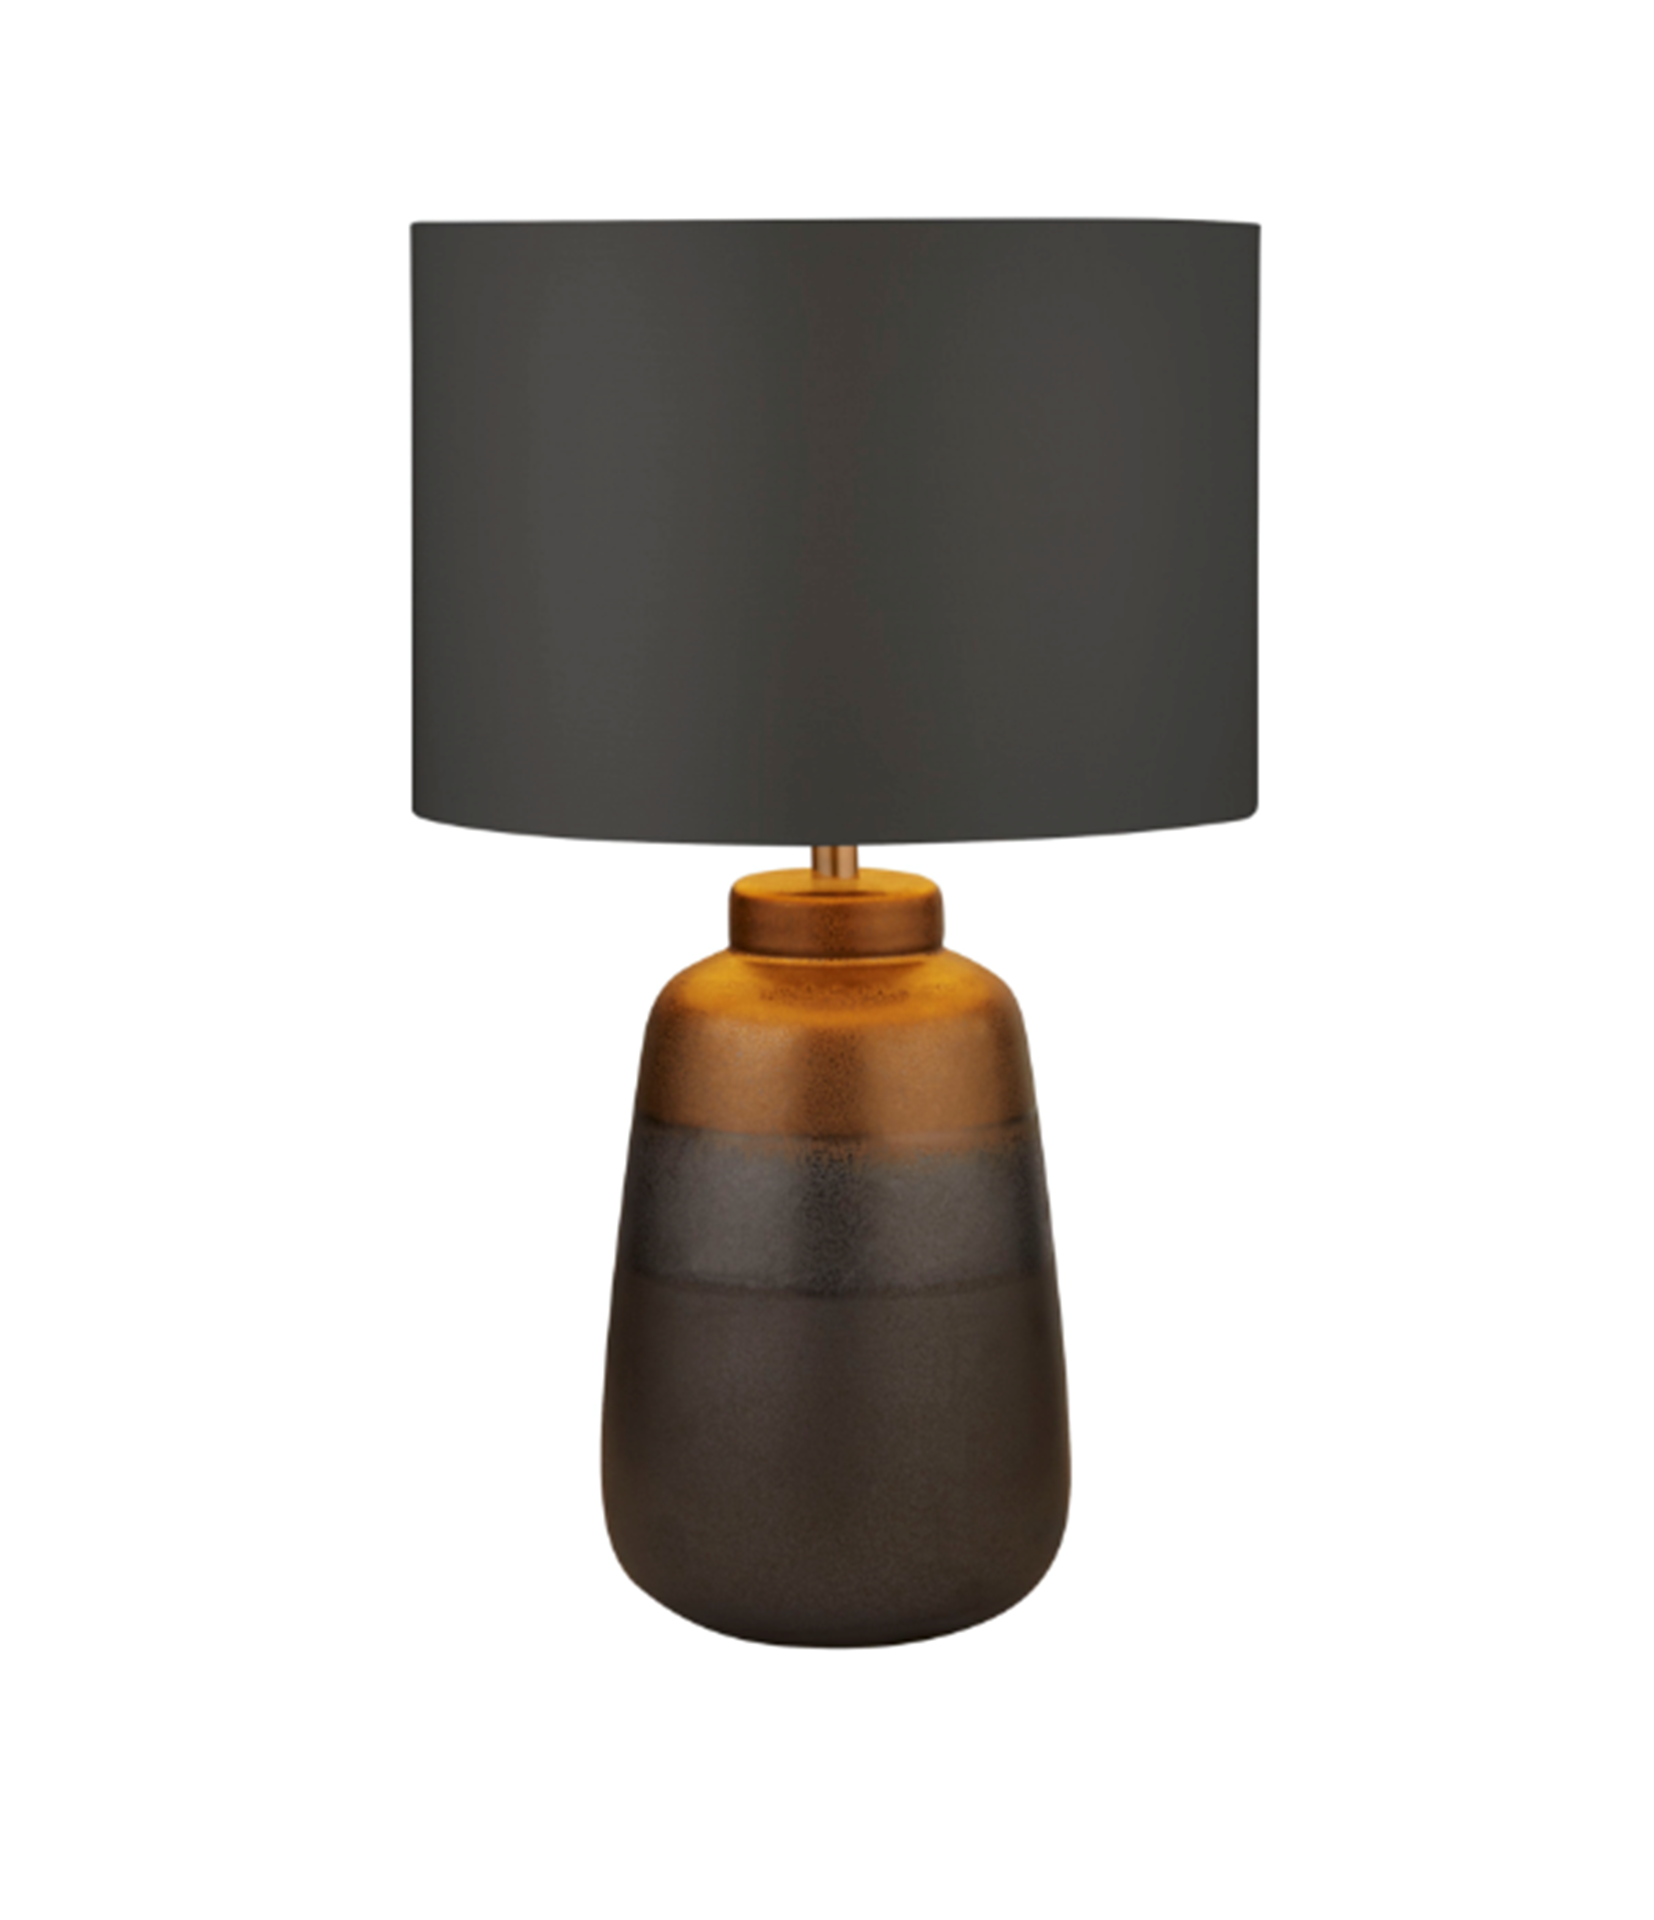 SEARCHLIGHT NAVY/GOLD CERAMIC TABLE LAMP WITH DARK GREY SHADE 2739